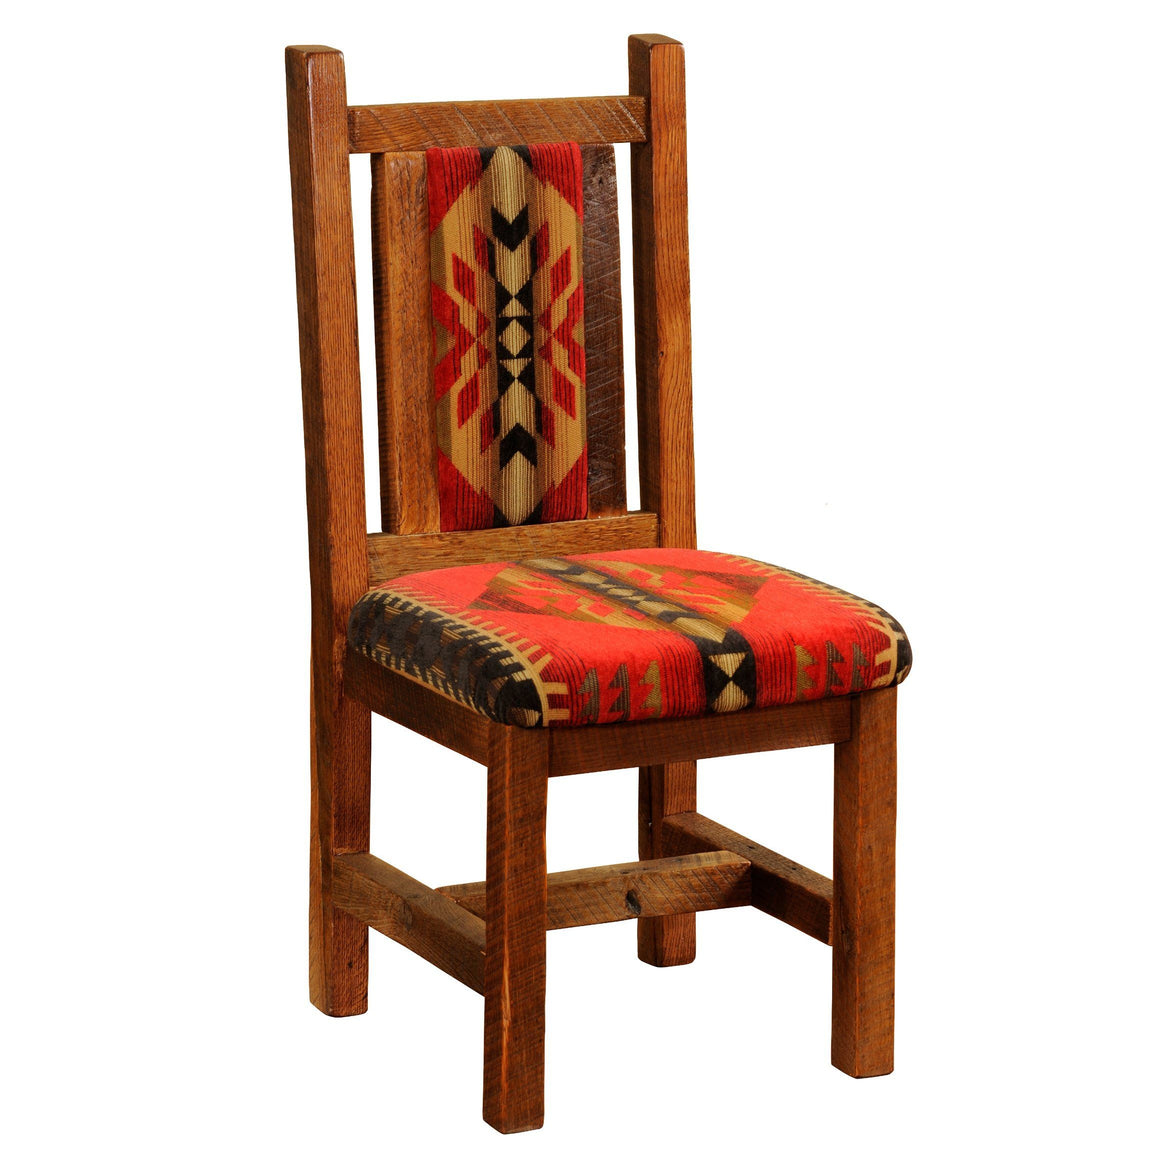 "Barnwood Artisan Upholstered Side Chair - Seat height 18"" - Standard Finish - Rustic Deco Incorporated"